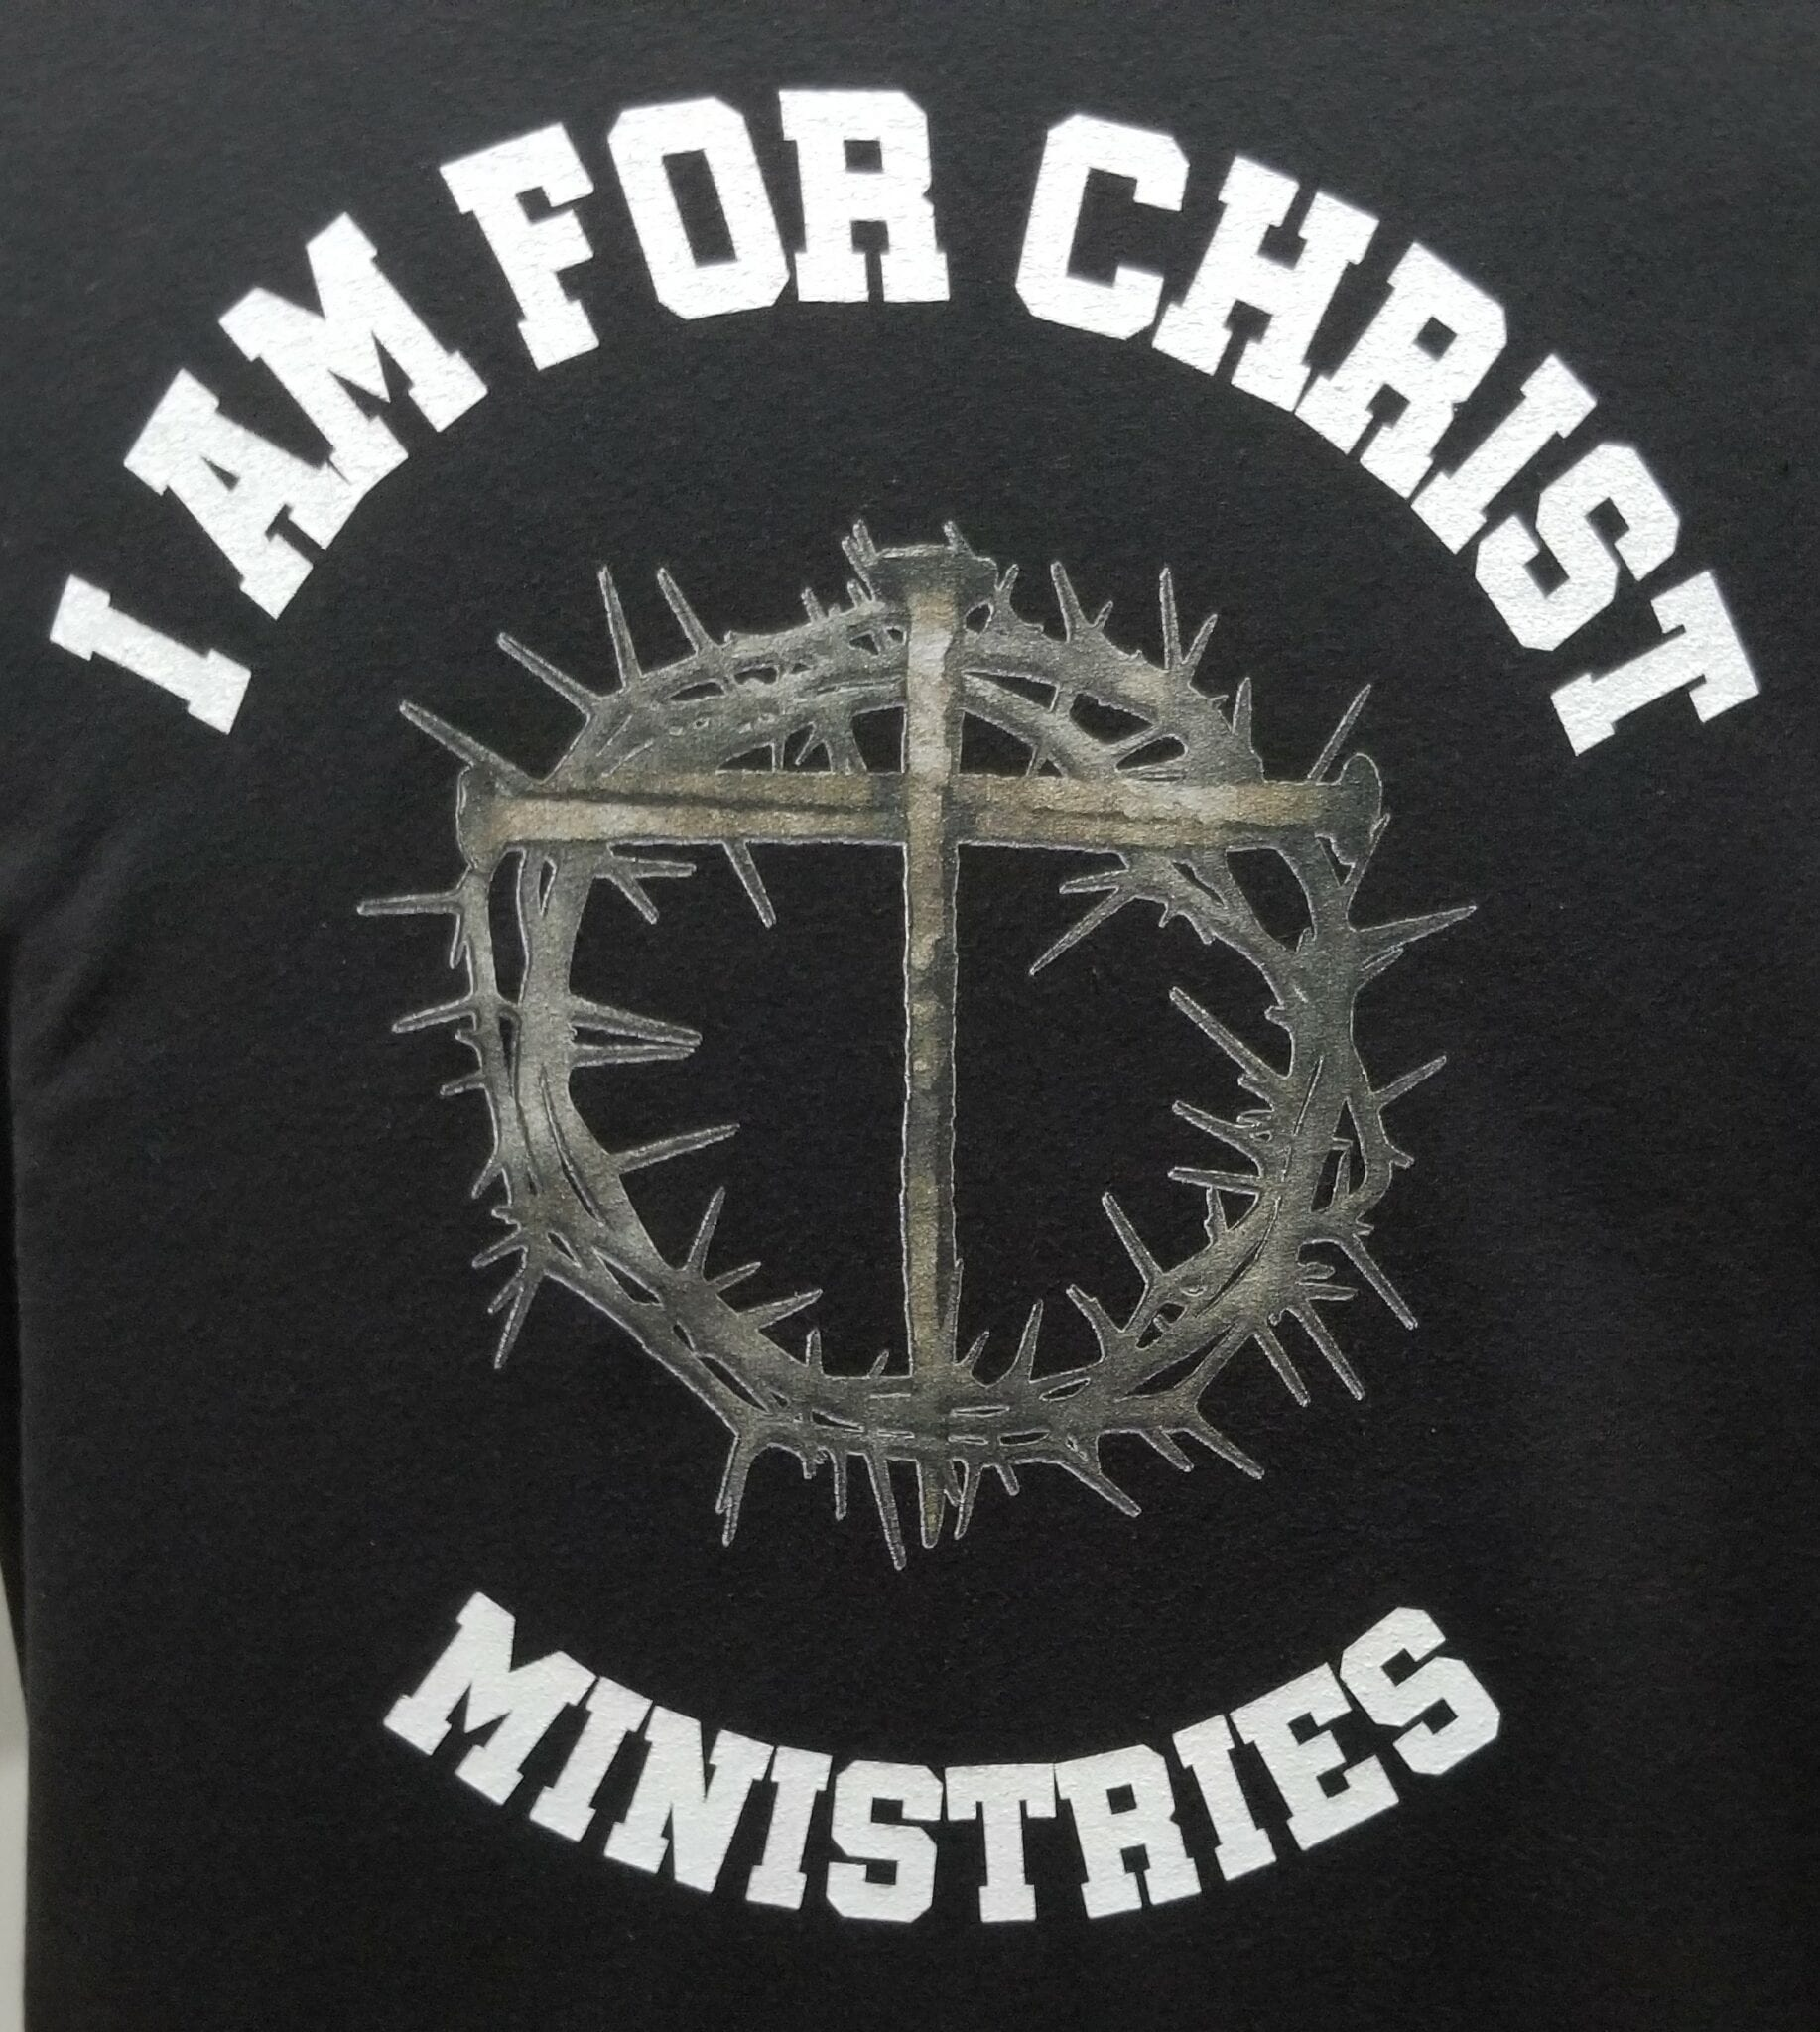 I AM for Christ Ministries